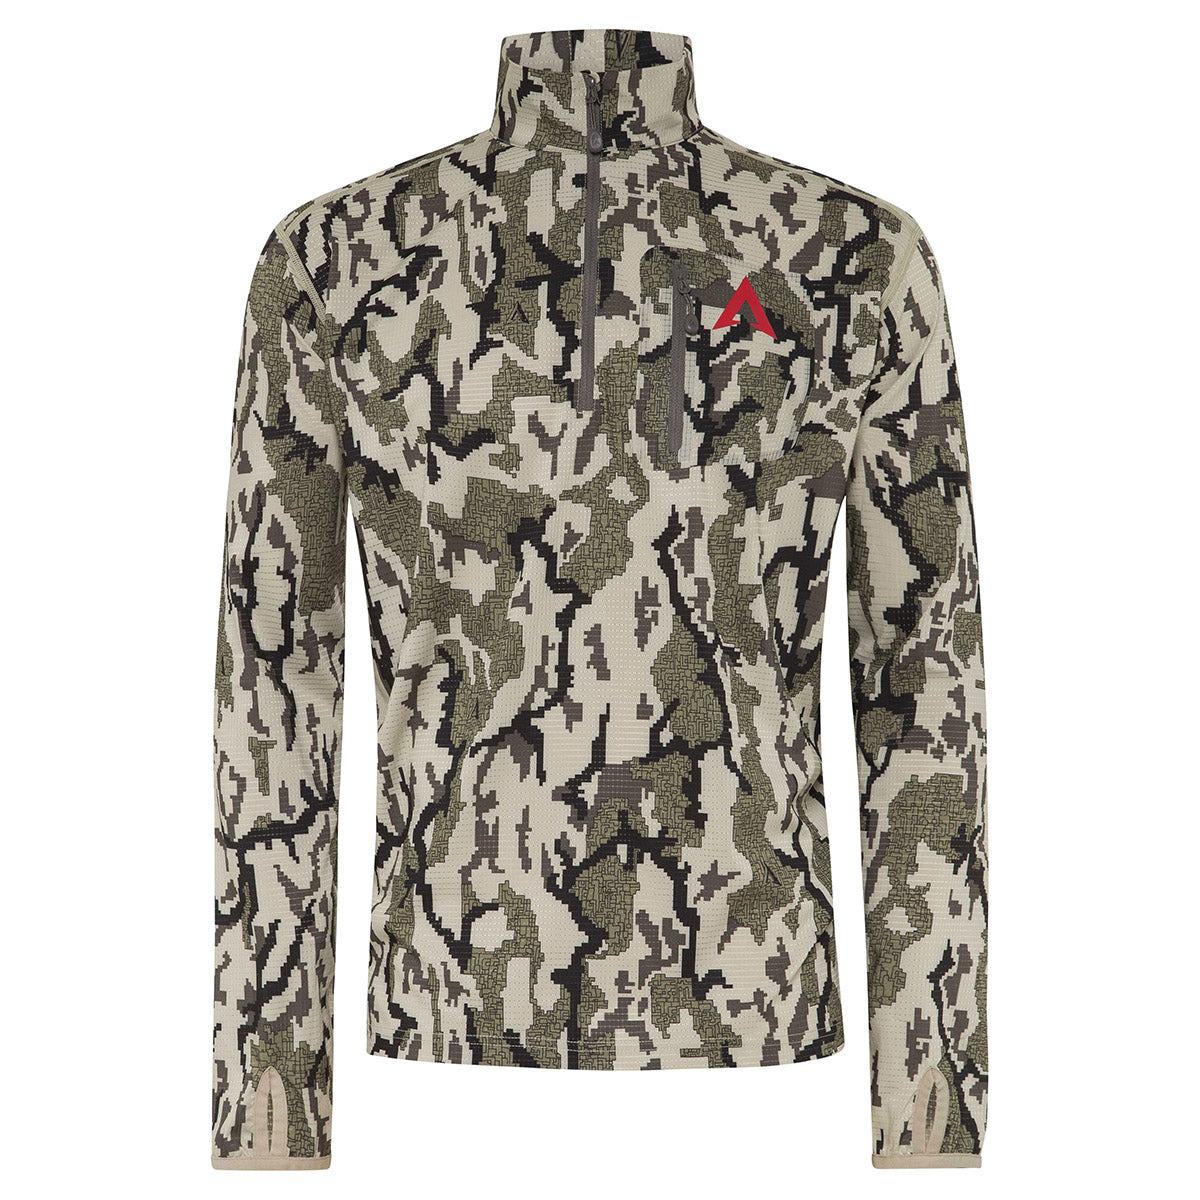 Men's Hunting Shirts - Scorcher Top